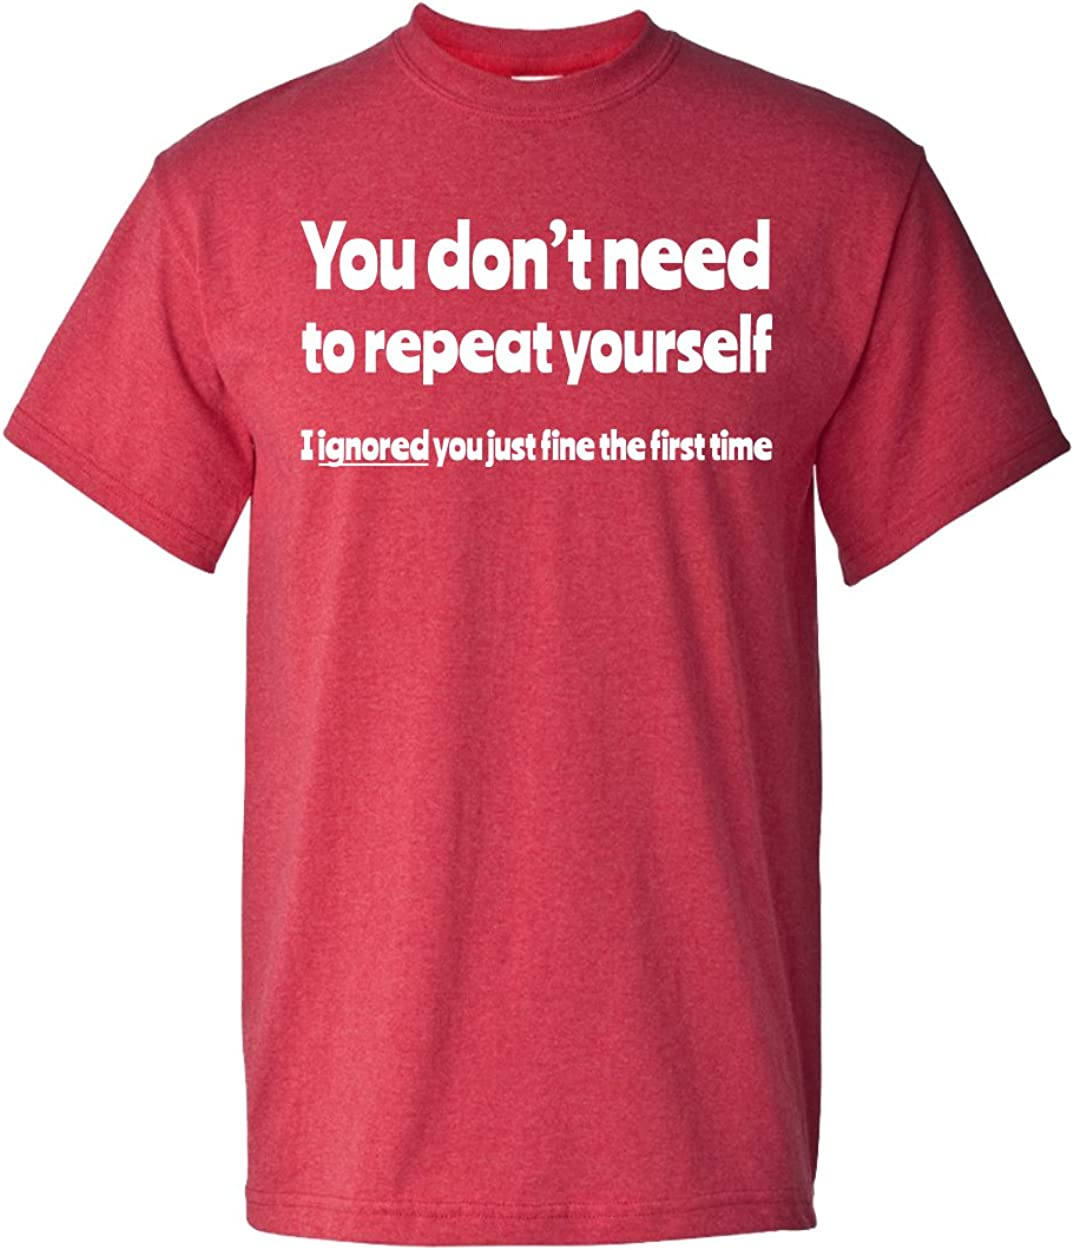 You Don't Need to Repeat Yourself Sarcastic Funny Men's Adult T-Shirt Apparel